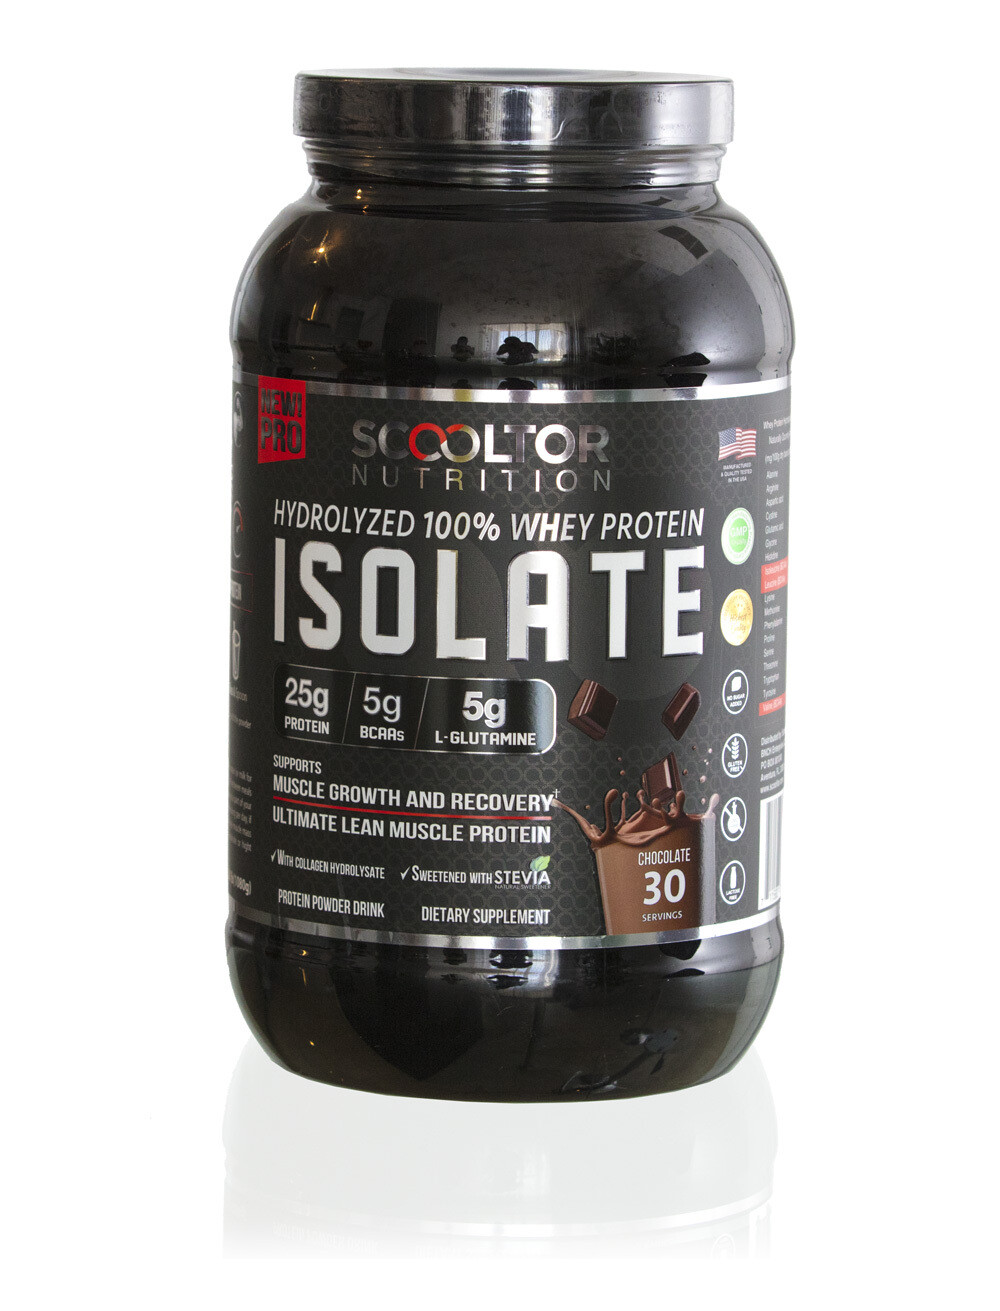 Scooltor Hydrolyzed 100% Whey Protein Isolate